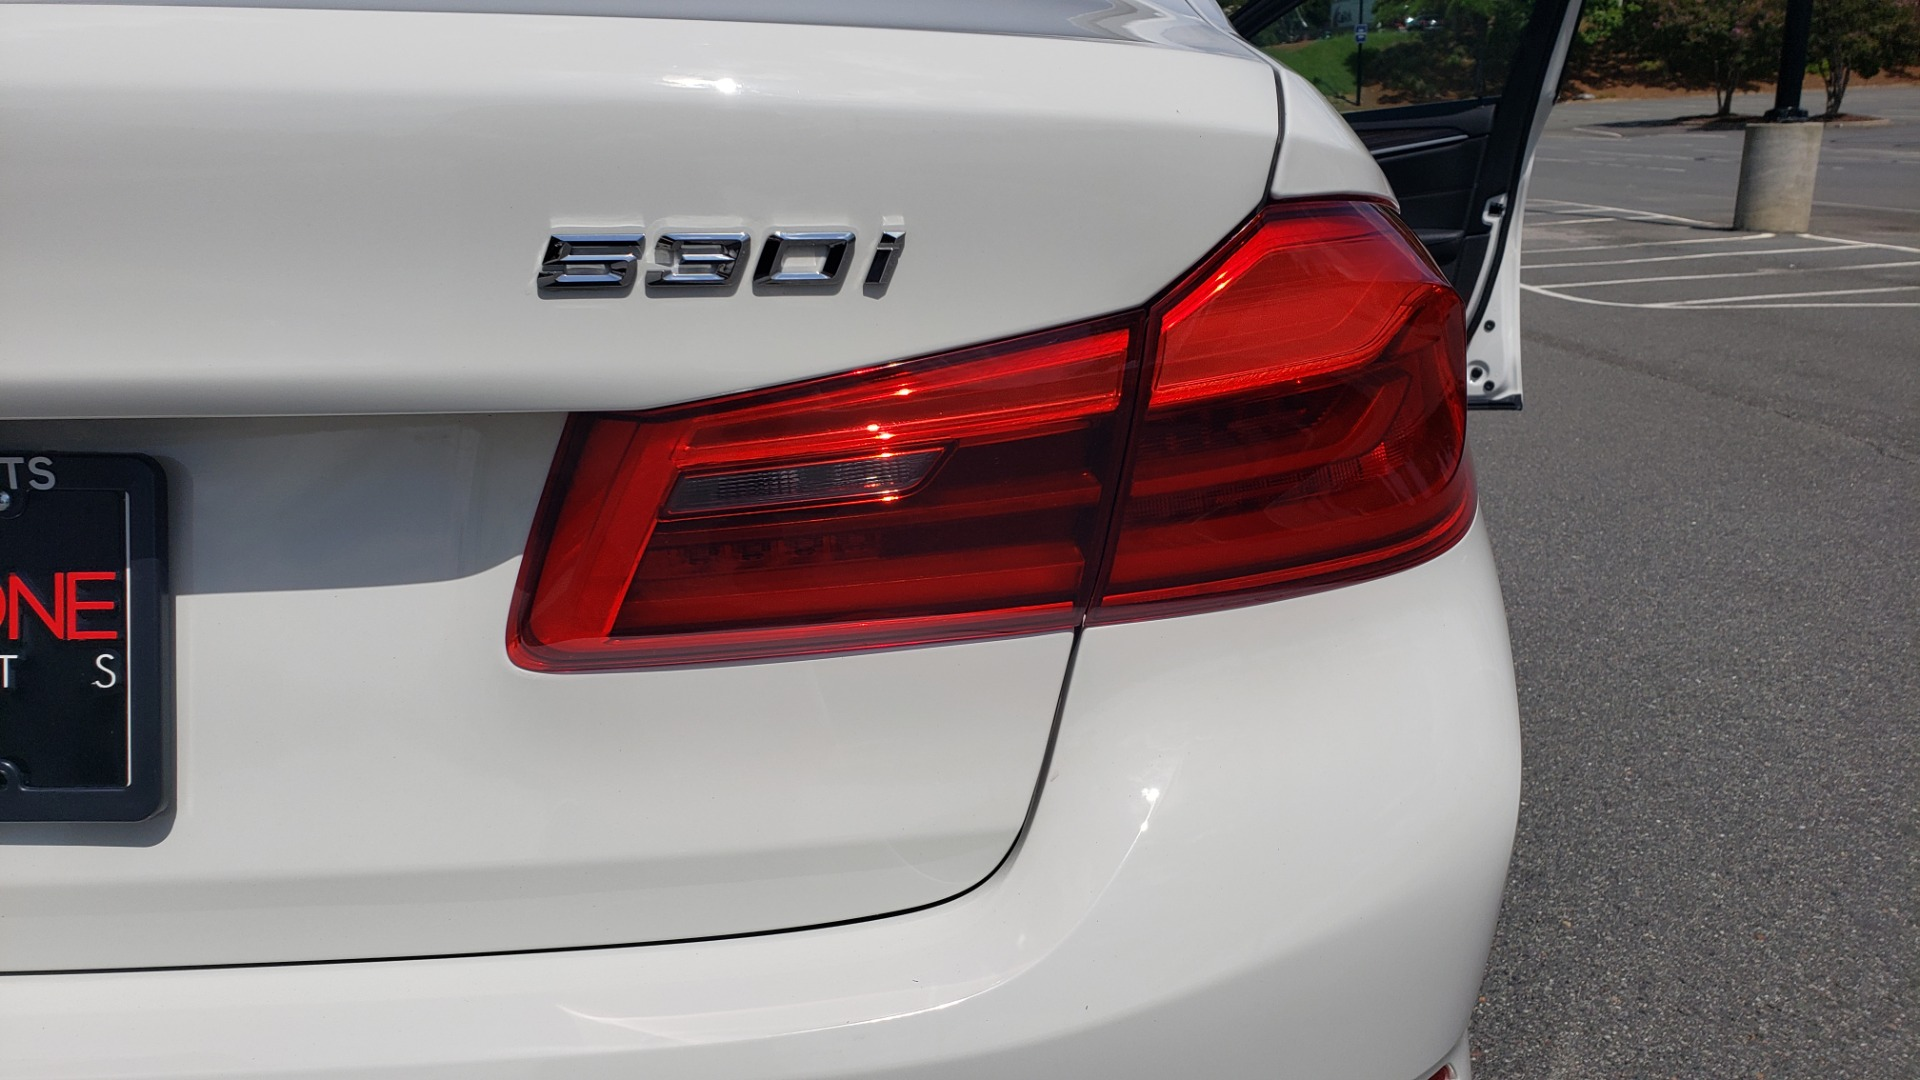 Used 2018 BMW 5 SERIES 530I XDRIVE PREMIUM / PARK ASST / NAV / SUNROOF / REARIEW for sale $37,795 at Formula Imports in Charlotte NC 28227 27